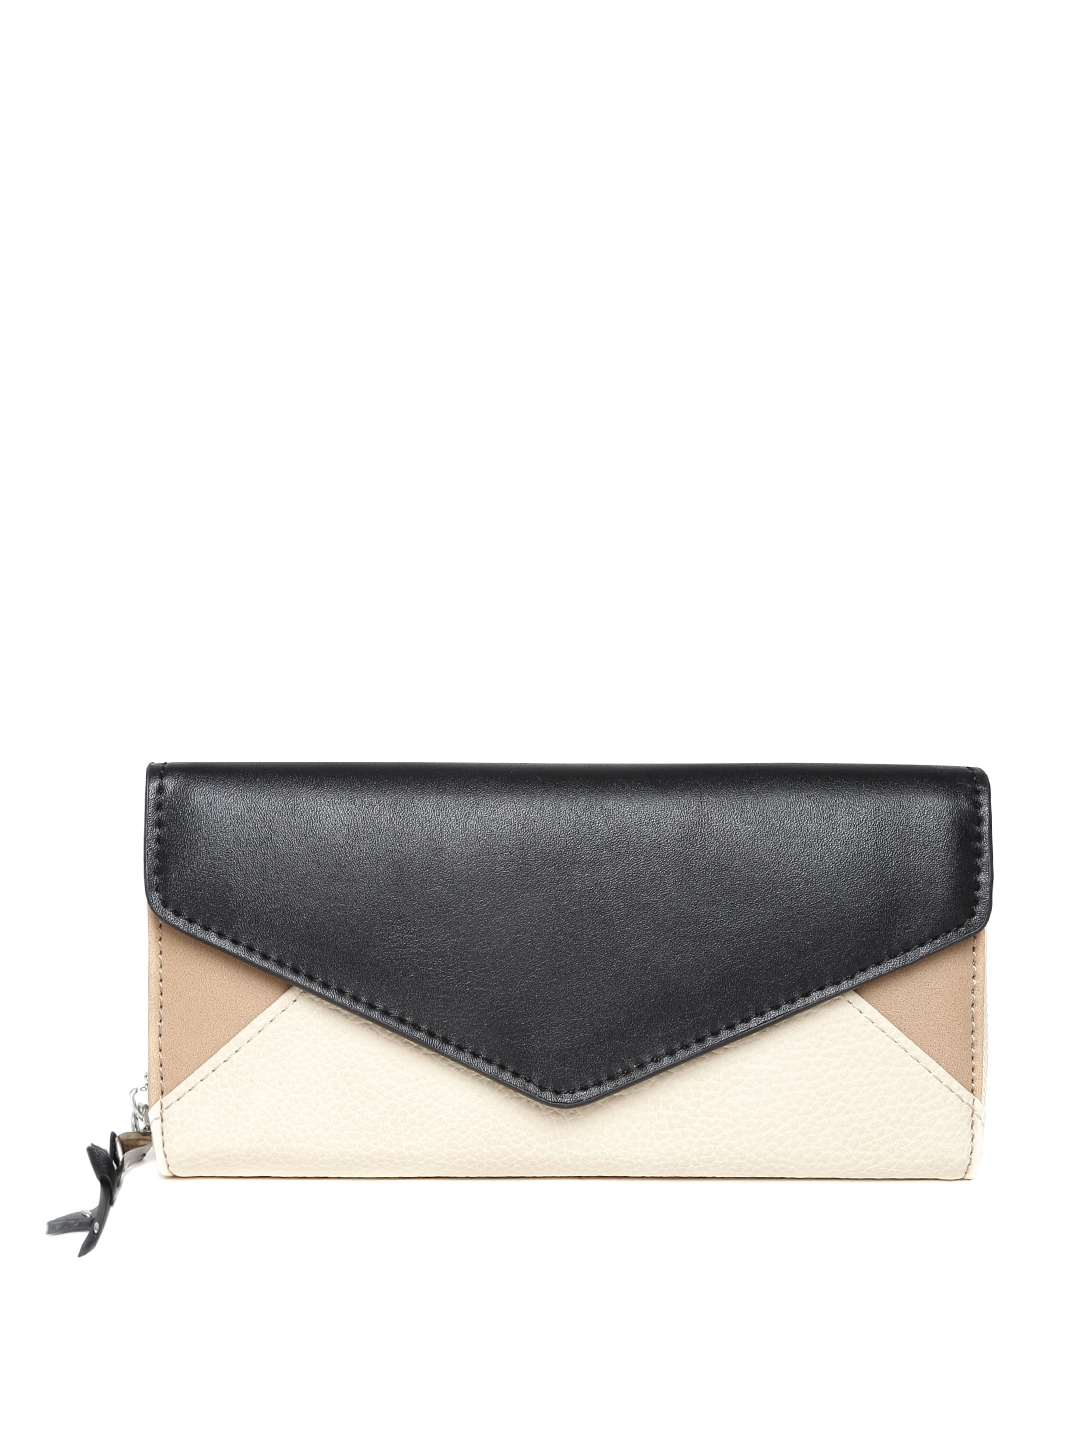 7422658ff Buy Parfois Women Black & Beige Wallet - Wallets for Women 1082986 | Myntra